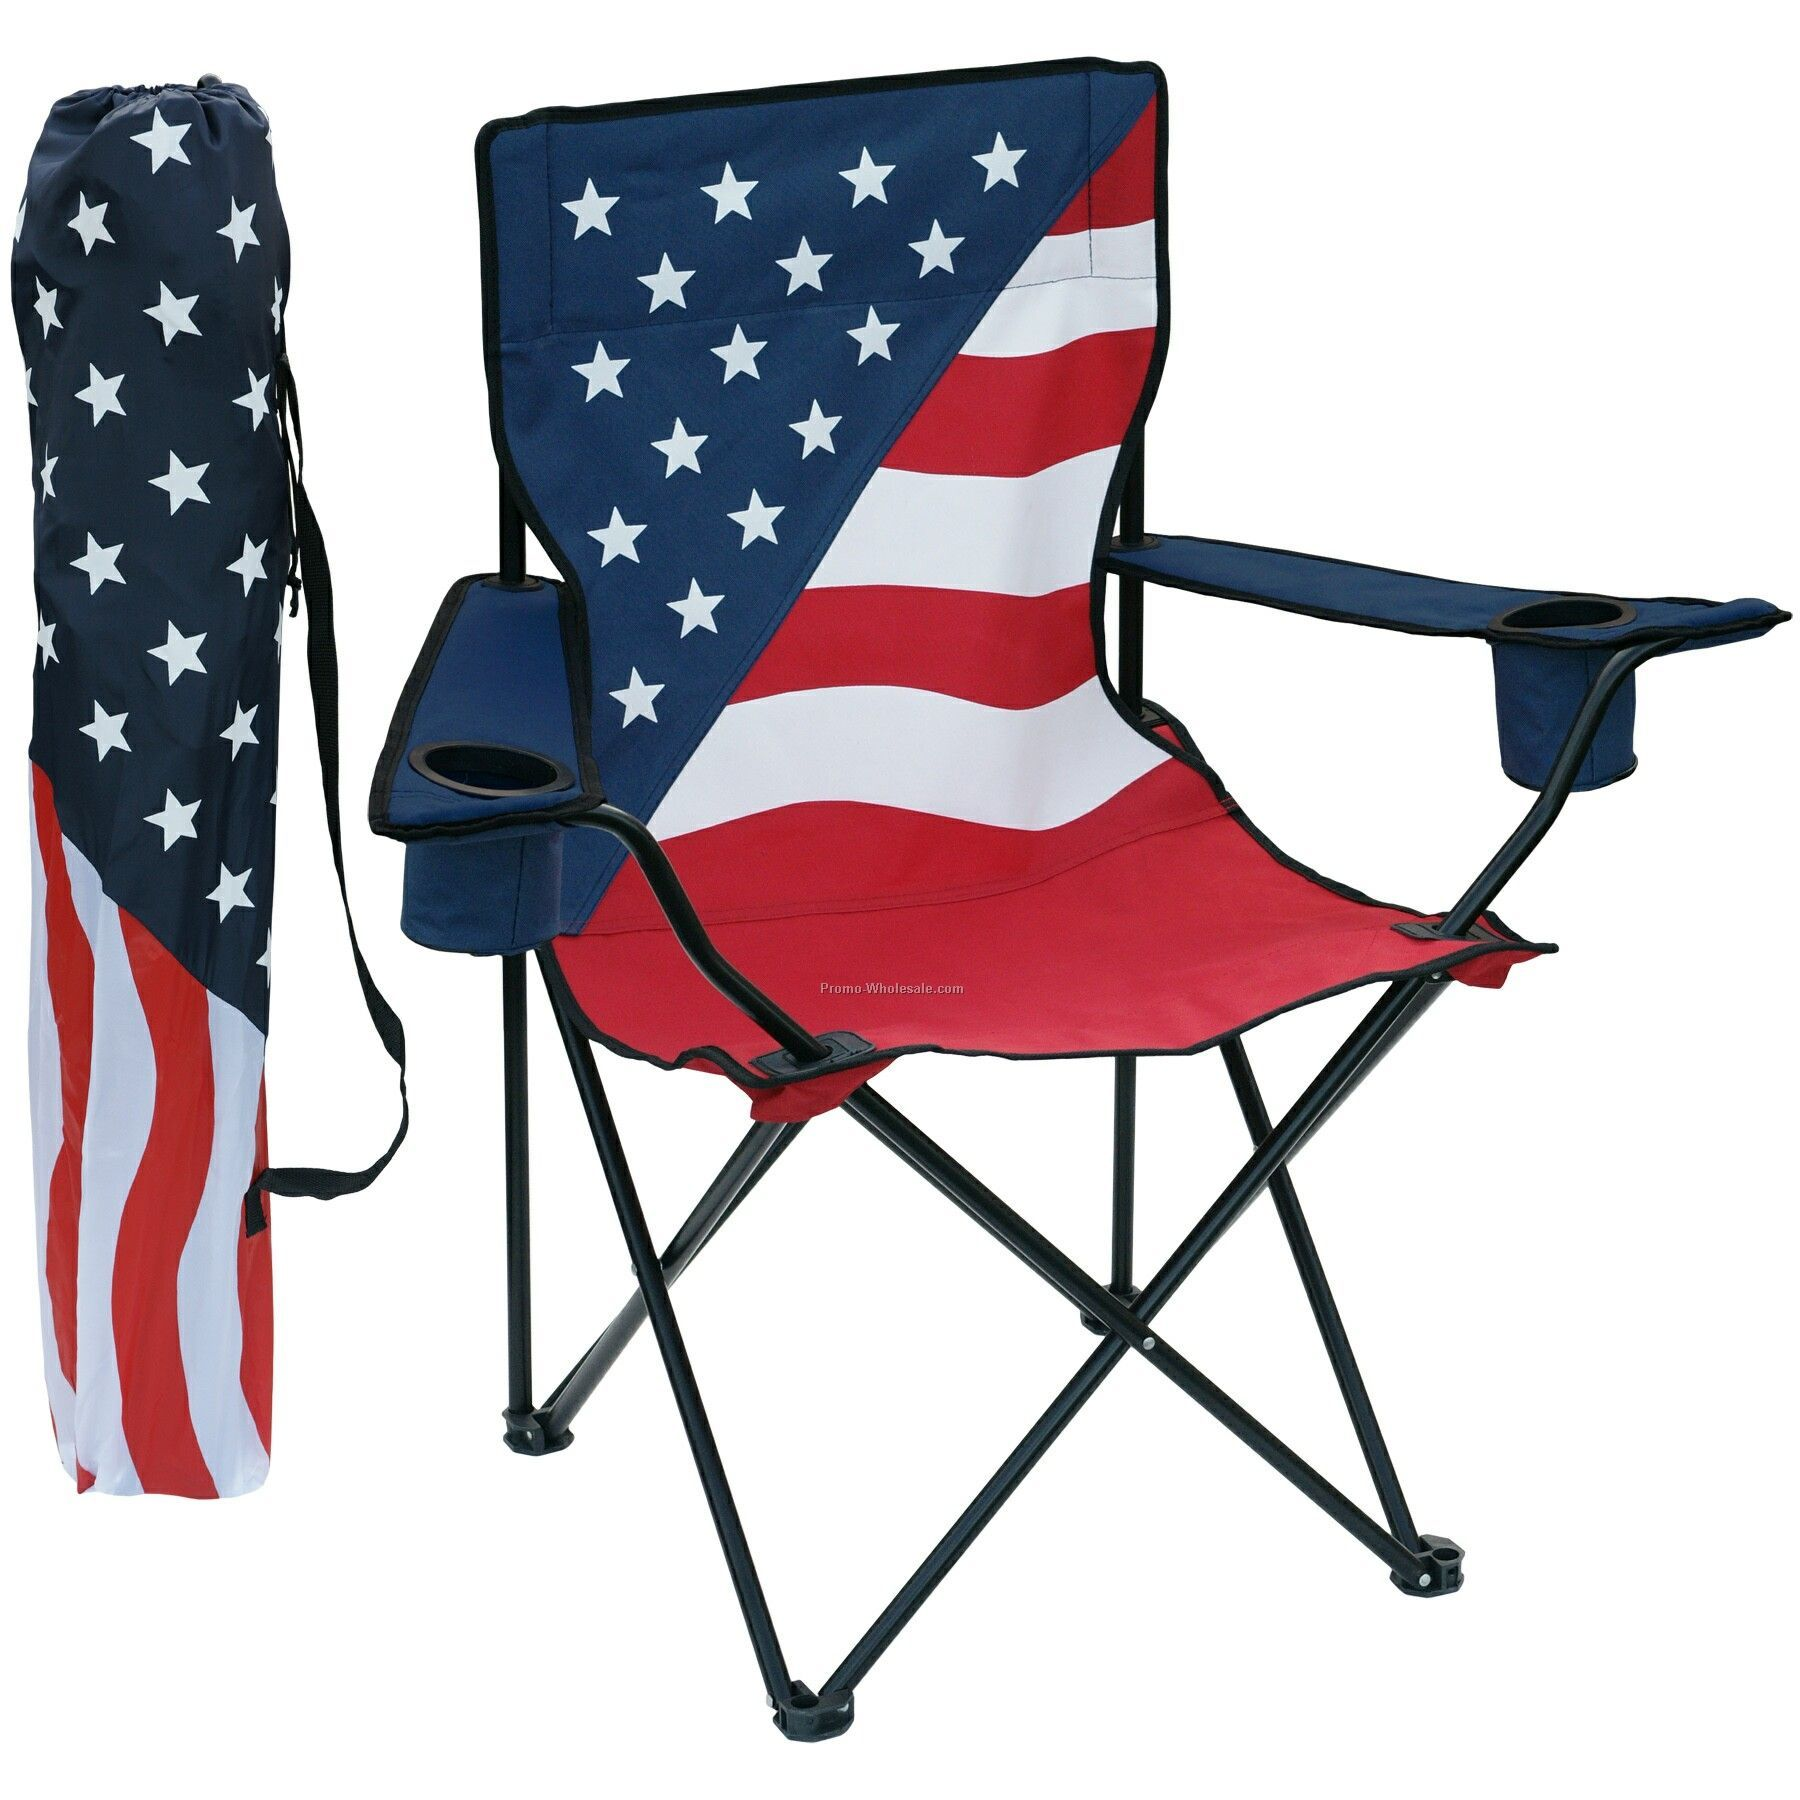 american flag chair aluminum webbed lawn chairs 29 quotx36 quot wood adirondack 30 40 day shipping